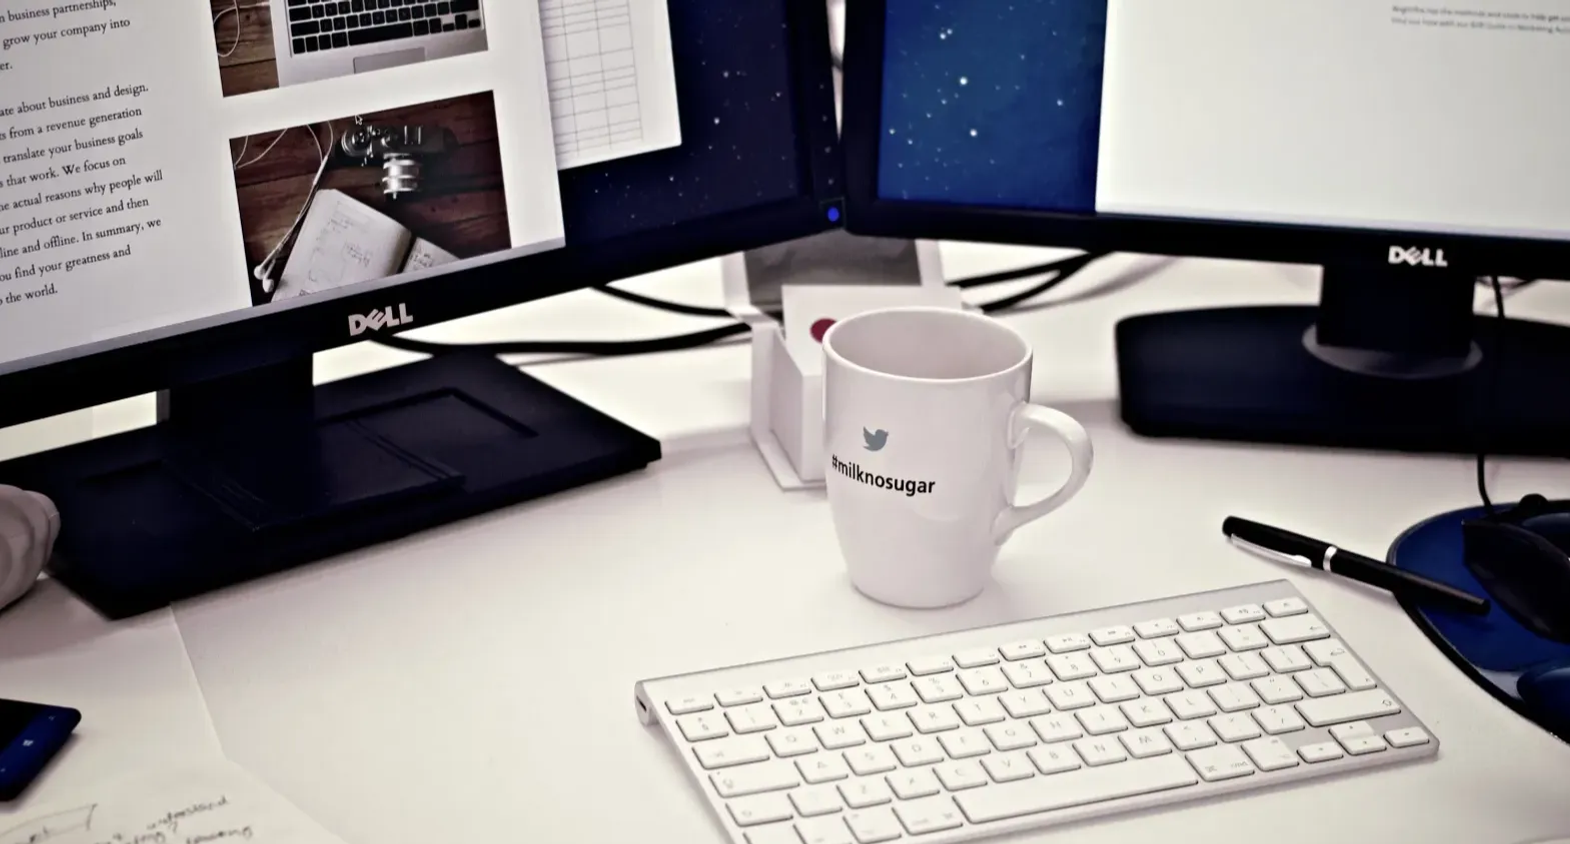 Coffee cup keyboard and computer